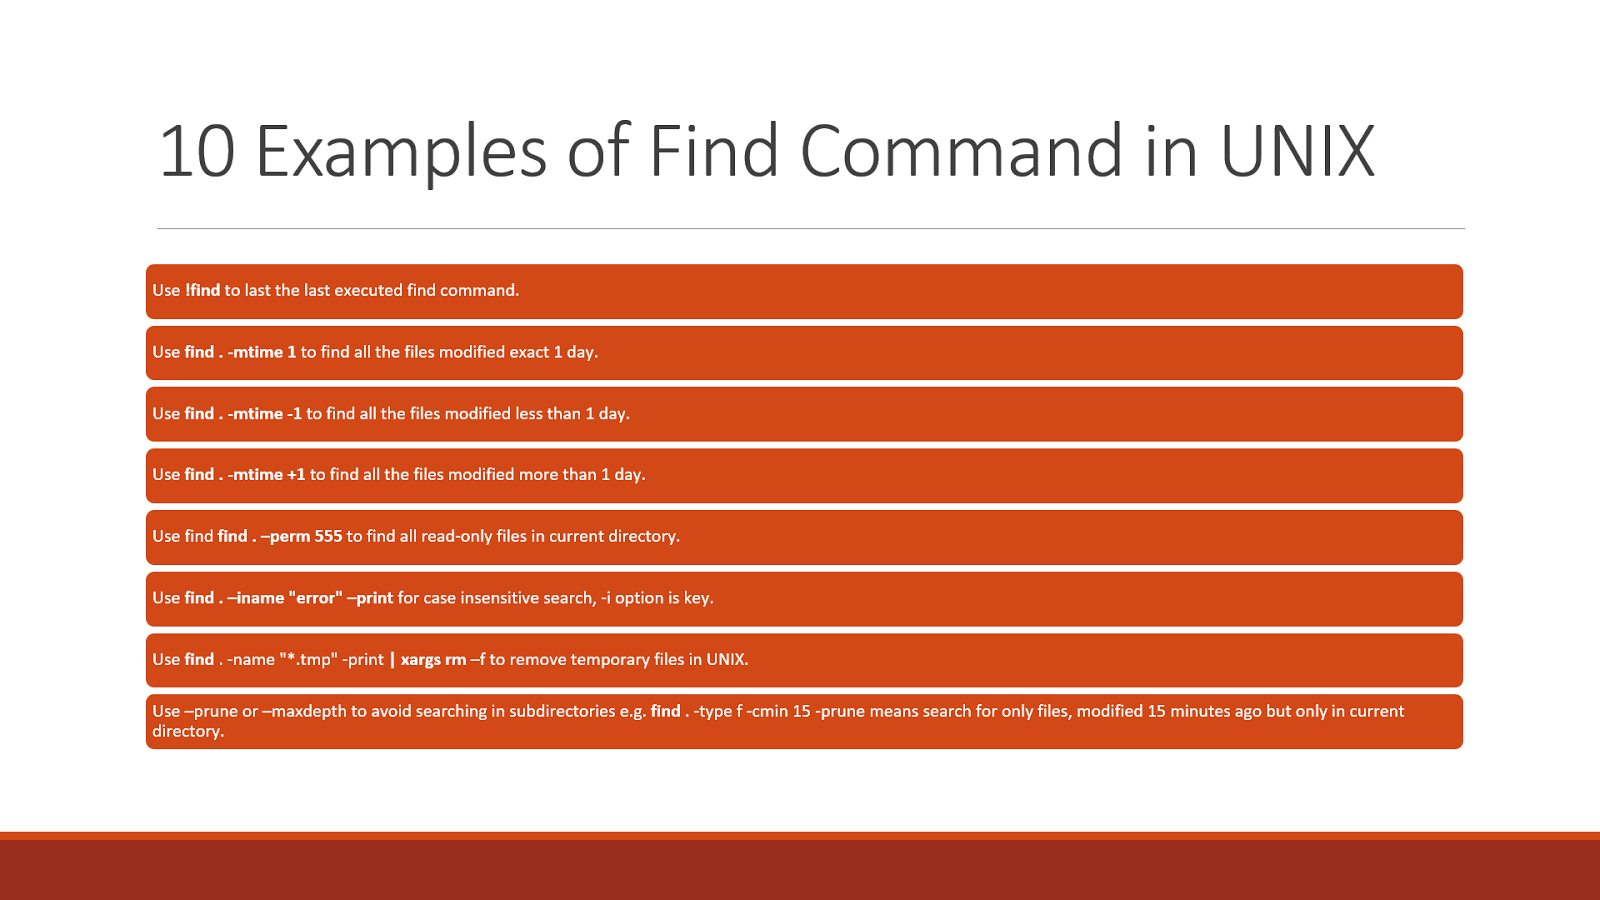 10 example of find command in unix and linux example 9 how to find files some days older and above certain size buycottarizona Image collections